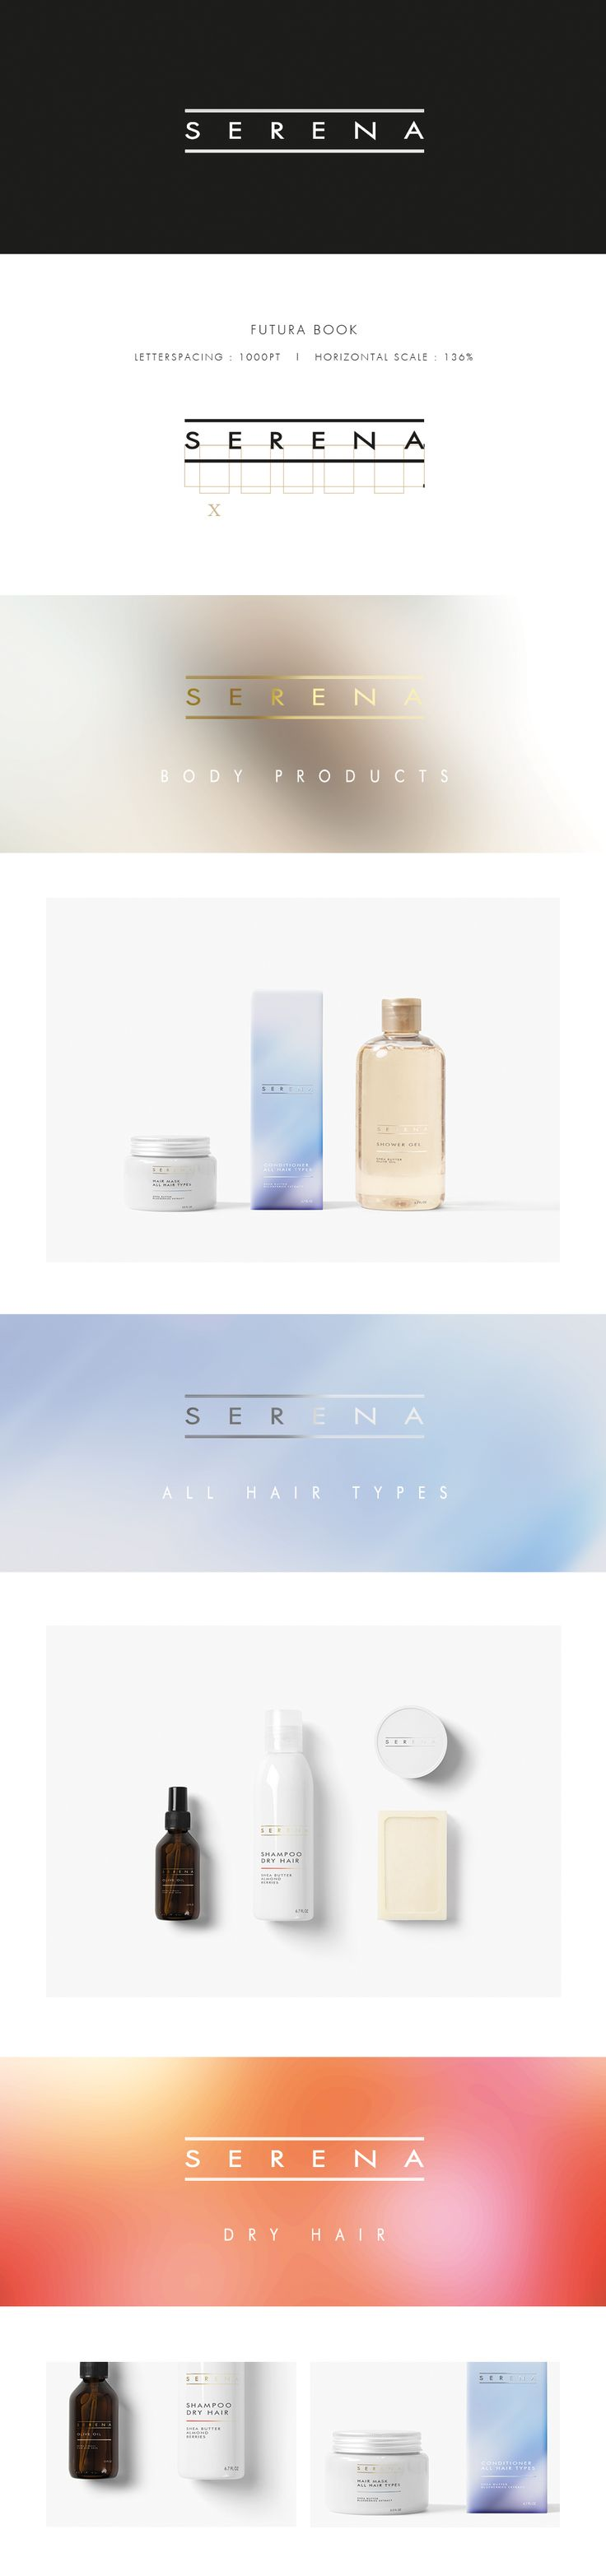 SERENA COSMETICS on Behance @ Filomena Spa Pinterest #Lifestyle #Wellness…